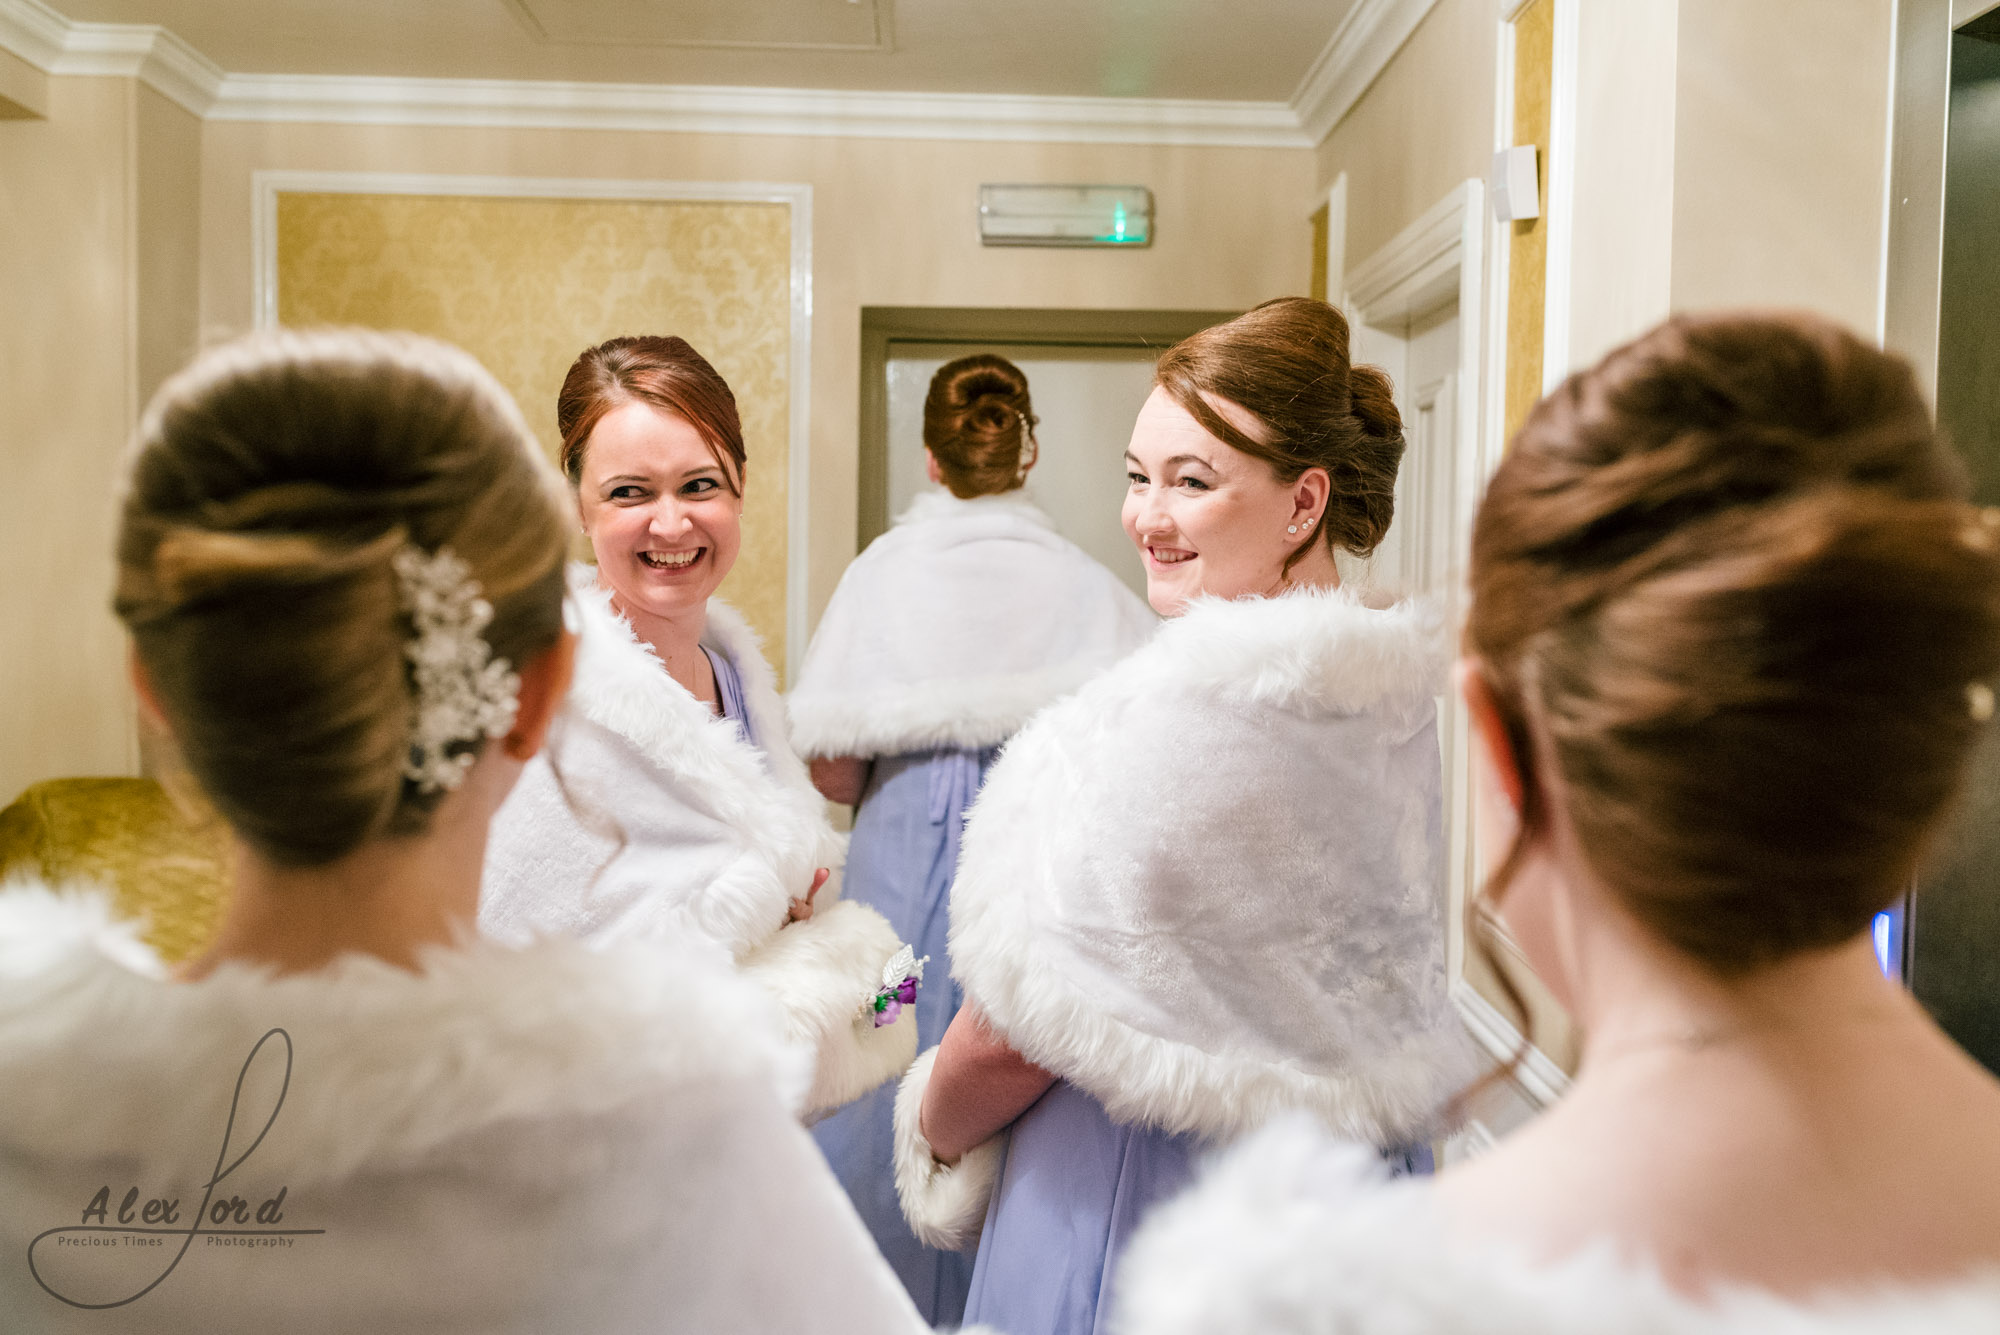 bridesmaids stand having a chat and a laugh together outside the ceremony room